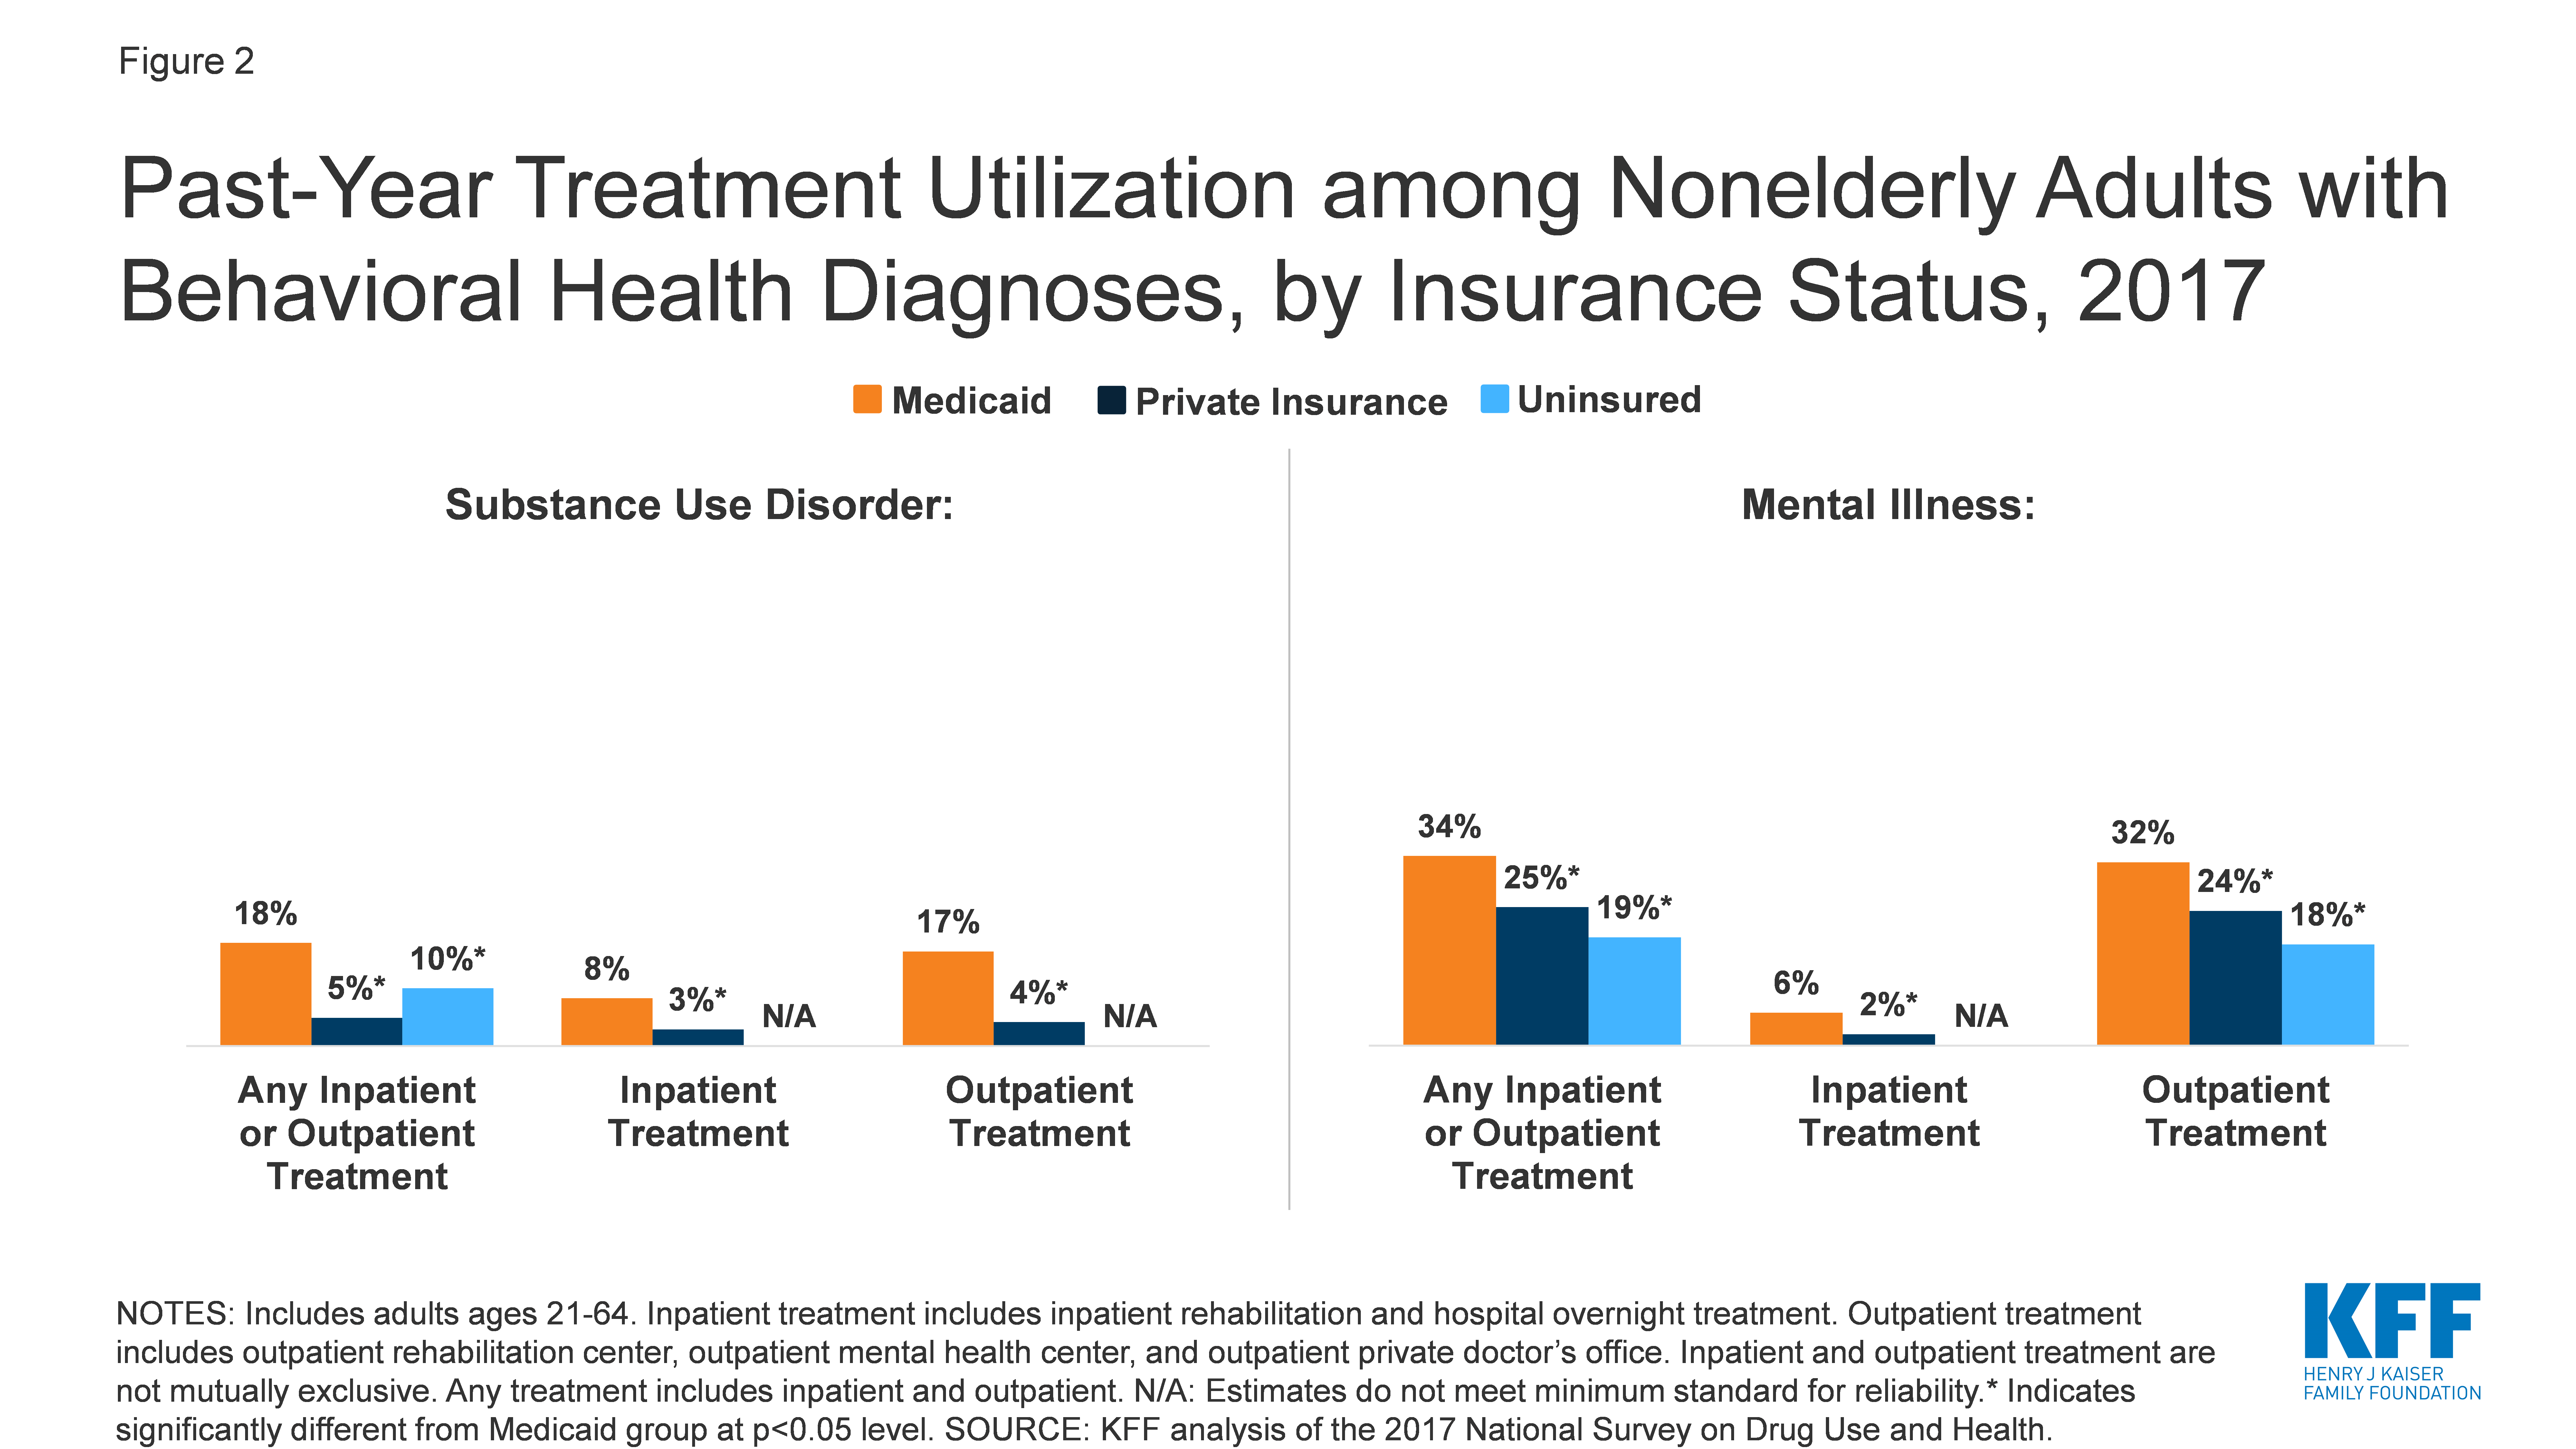 Past-Year Treatment Utilization